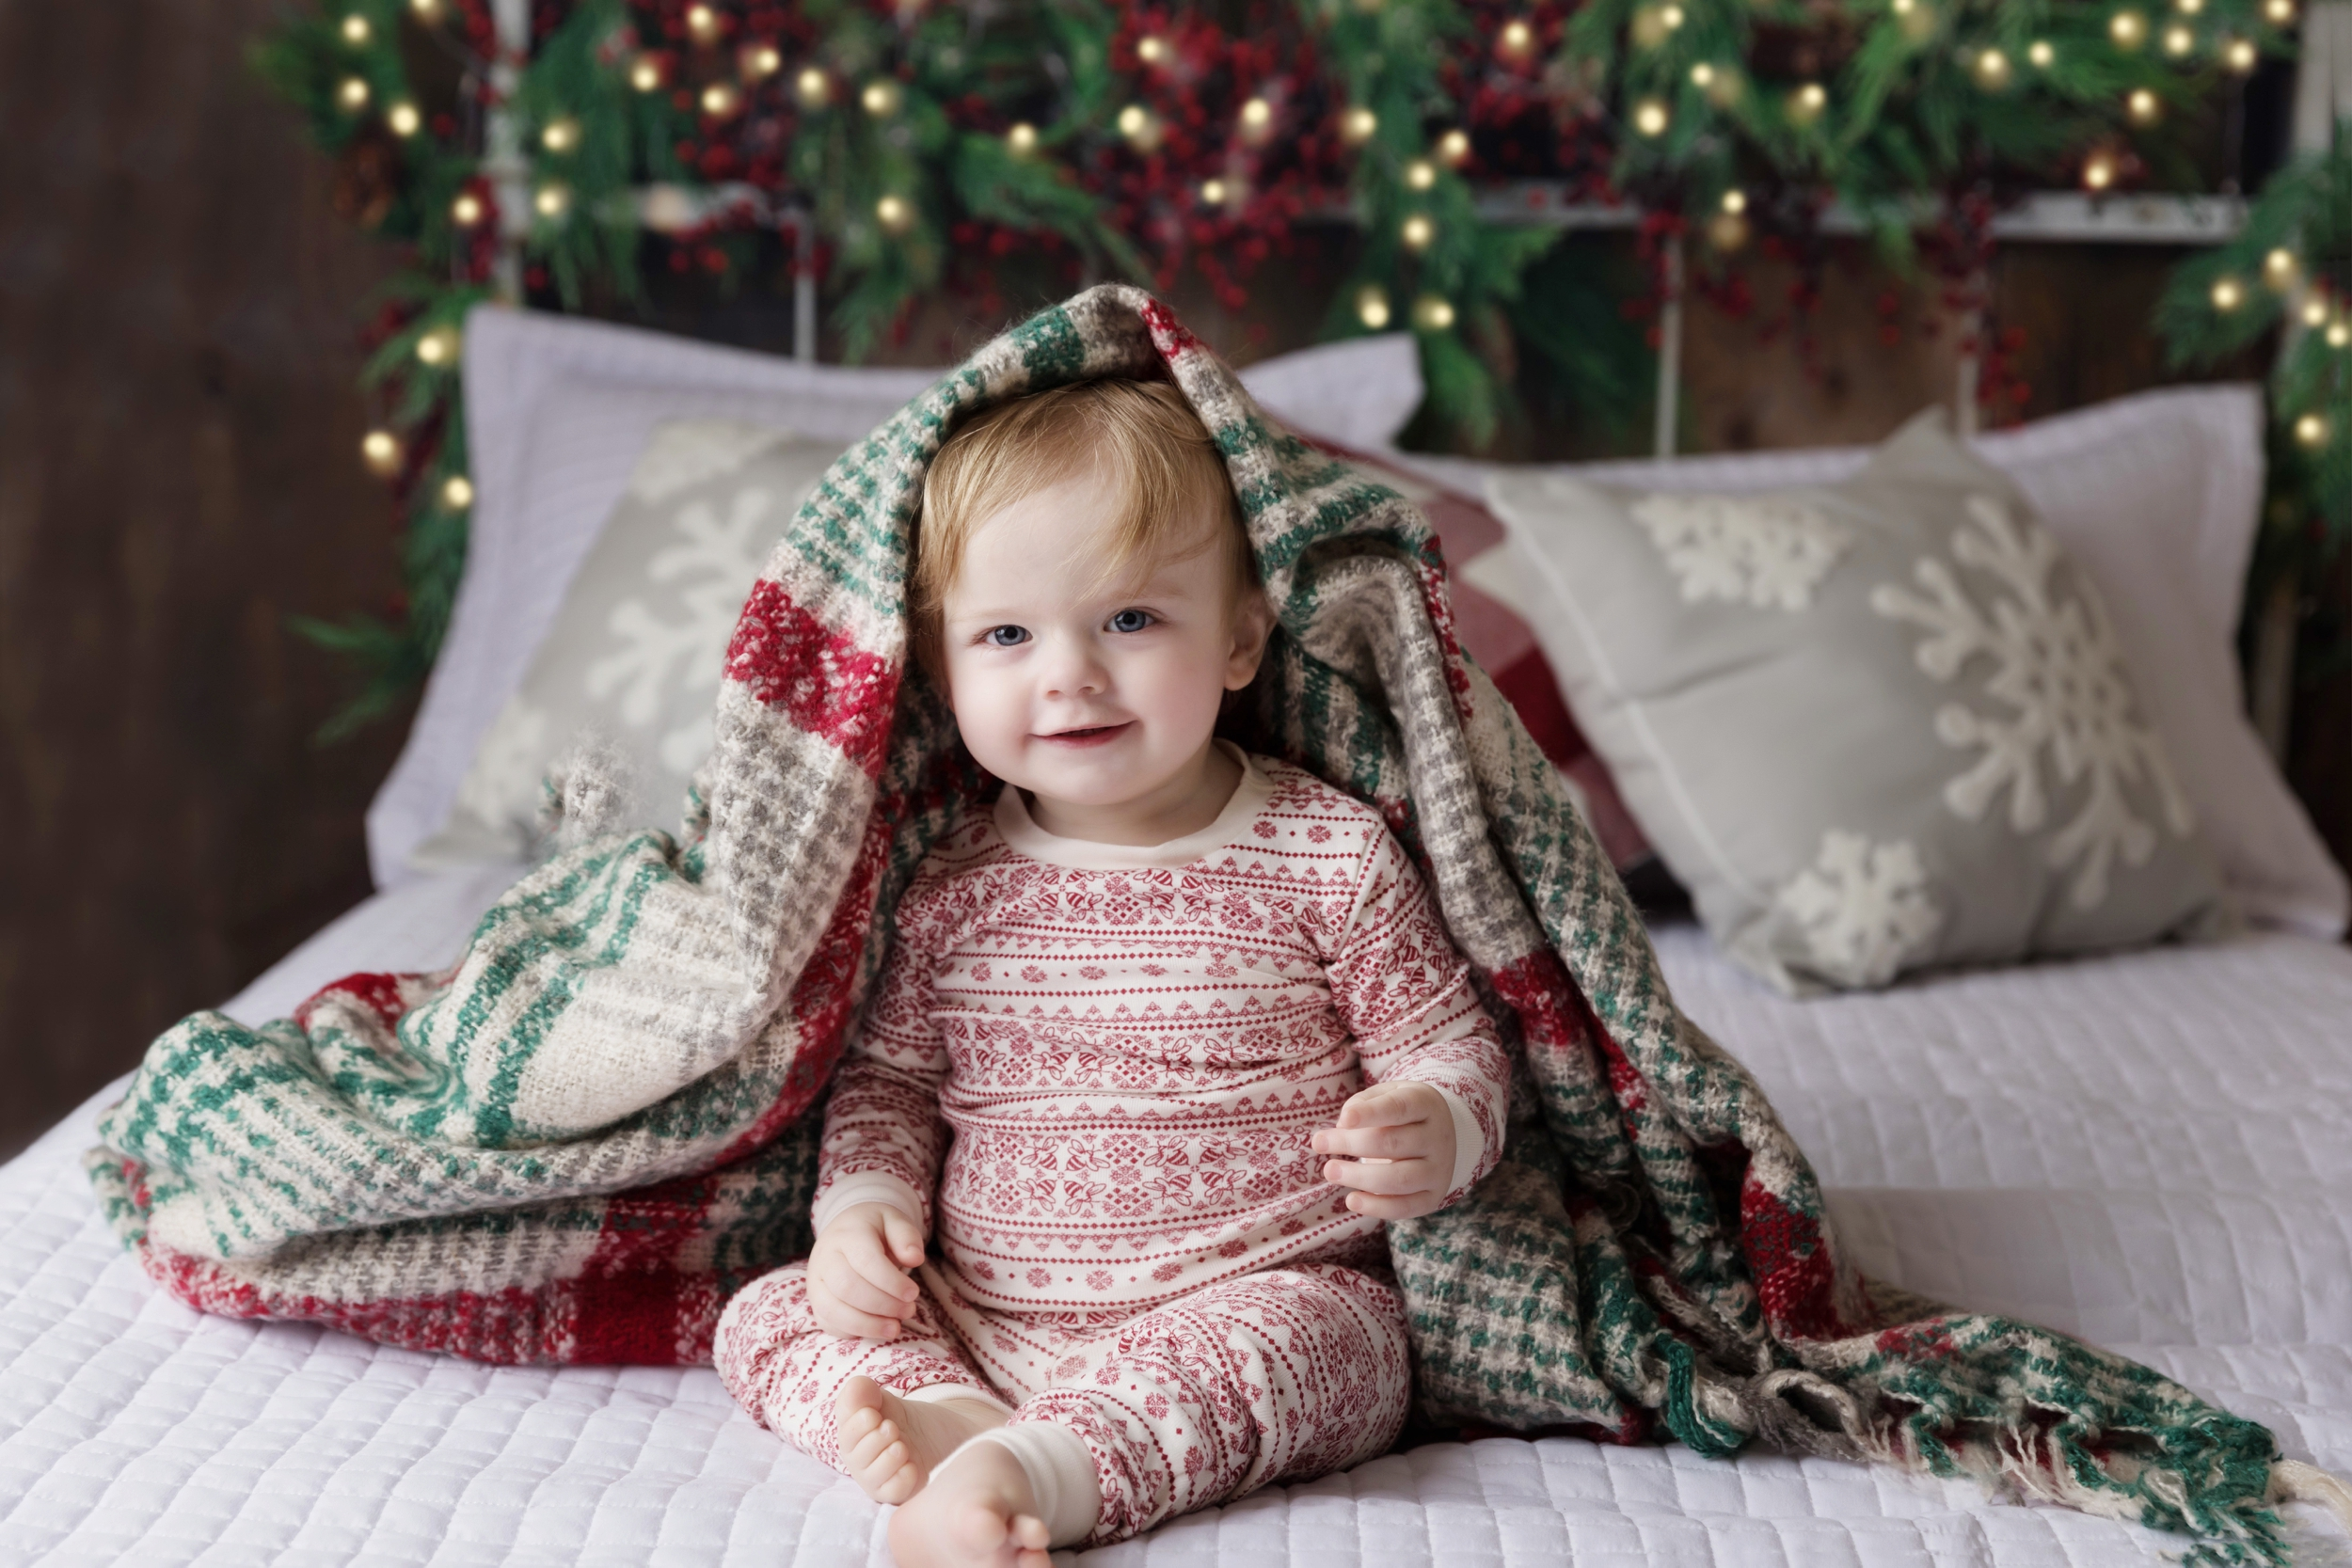 Christmas-Mini-Sessions-Jessica-Doffing-Photography_0001.jpg